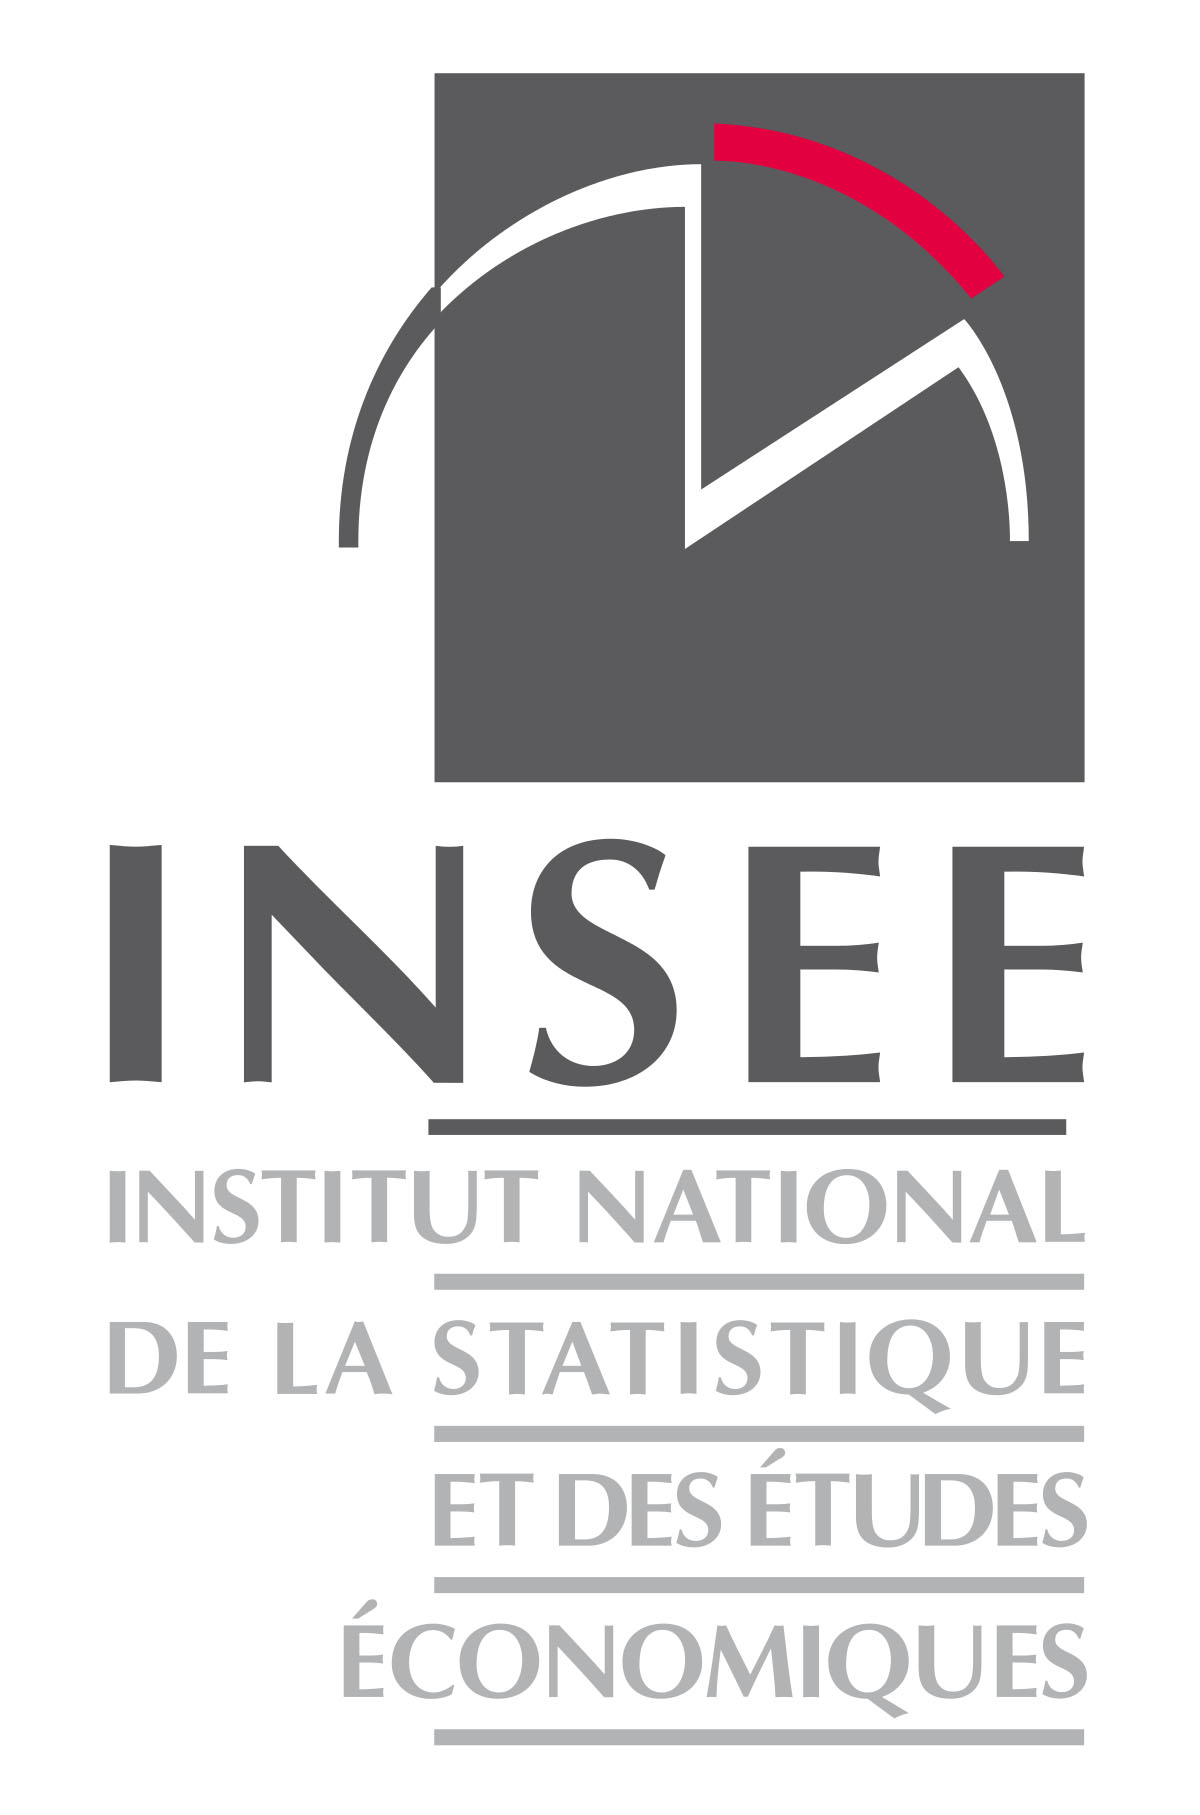 Logo Insee 1993 2013